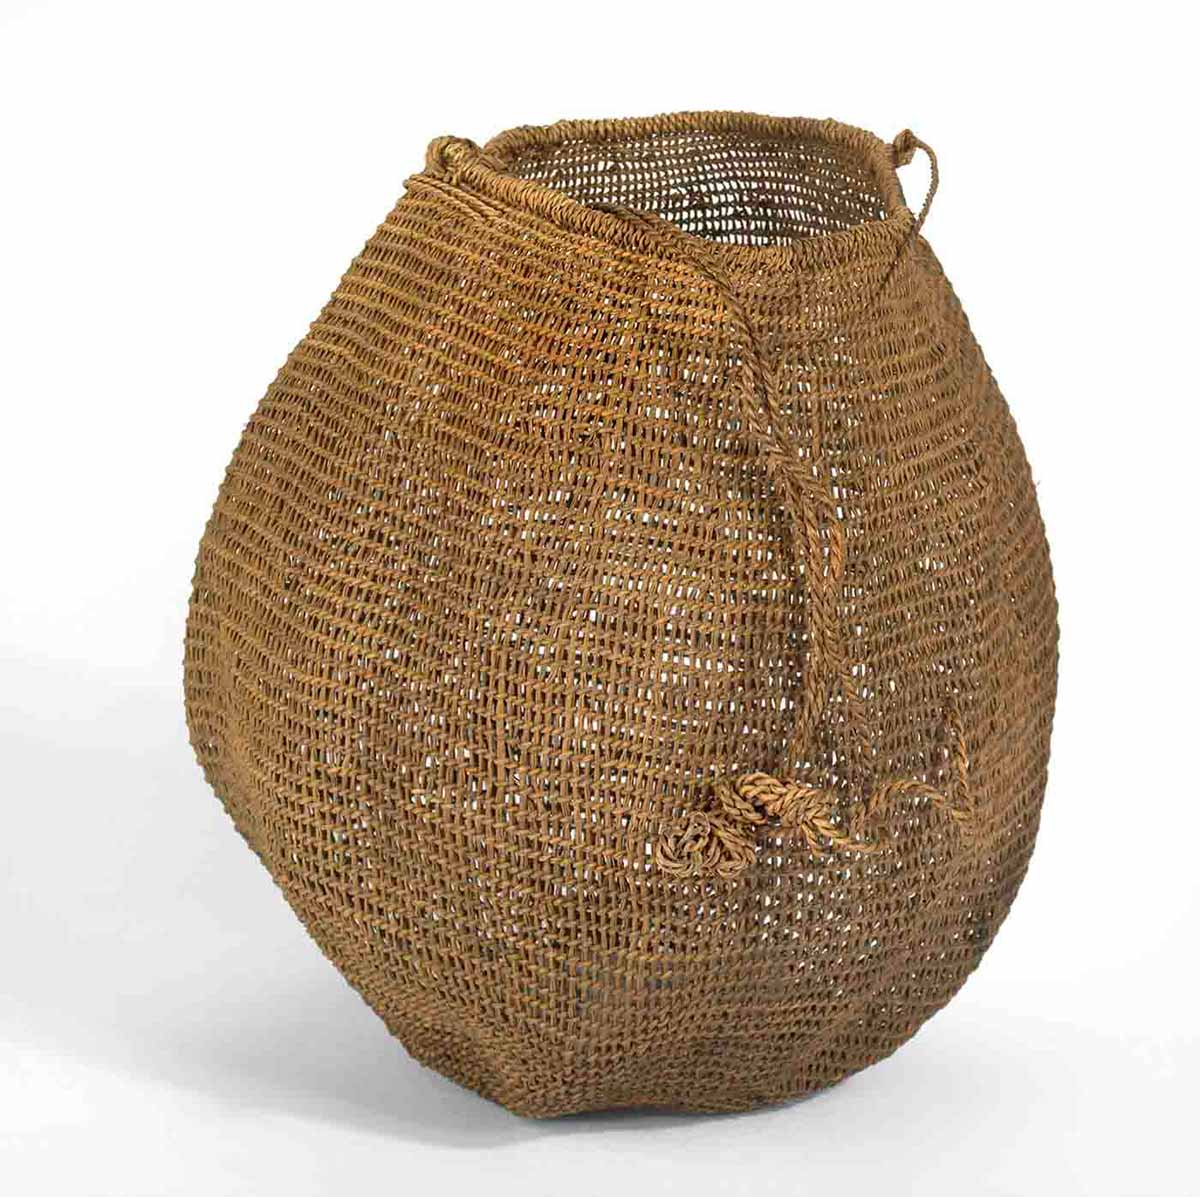 Woven basket. - click to view larger image